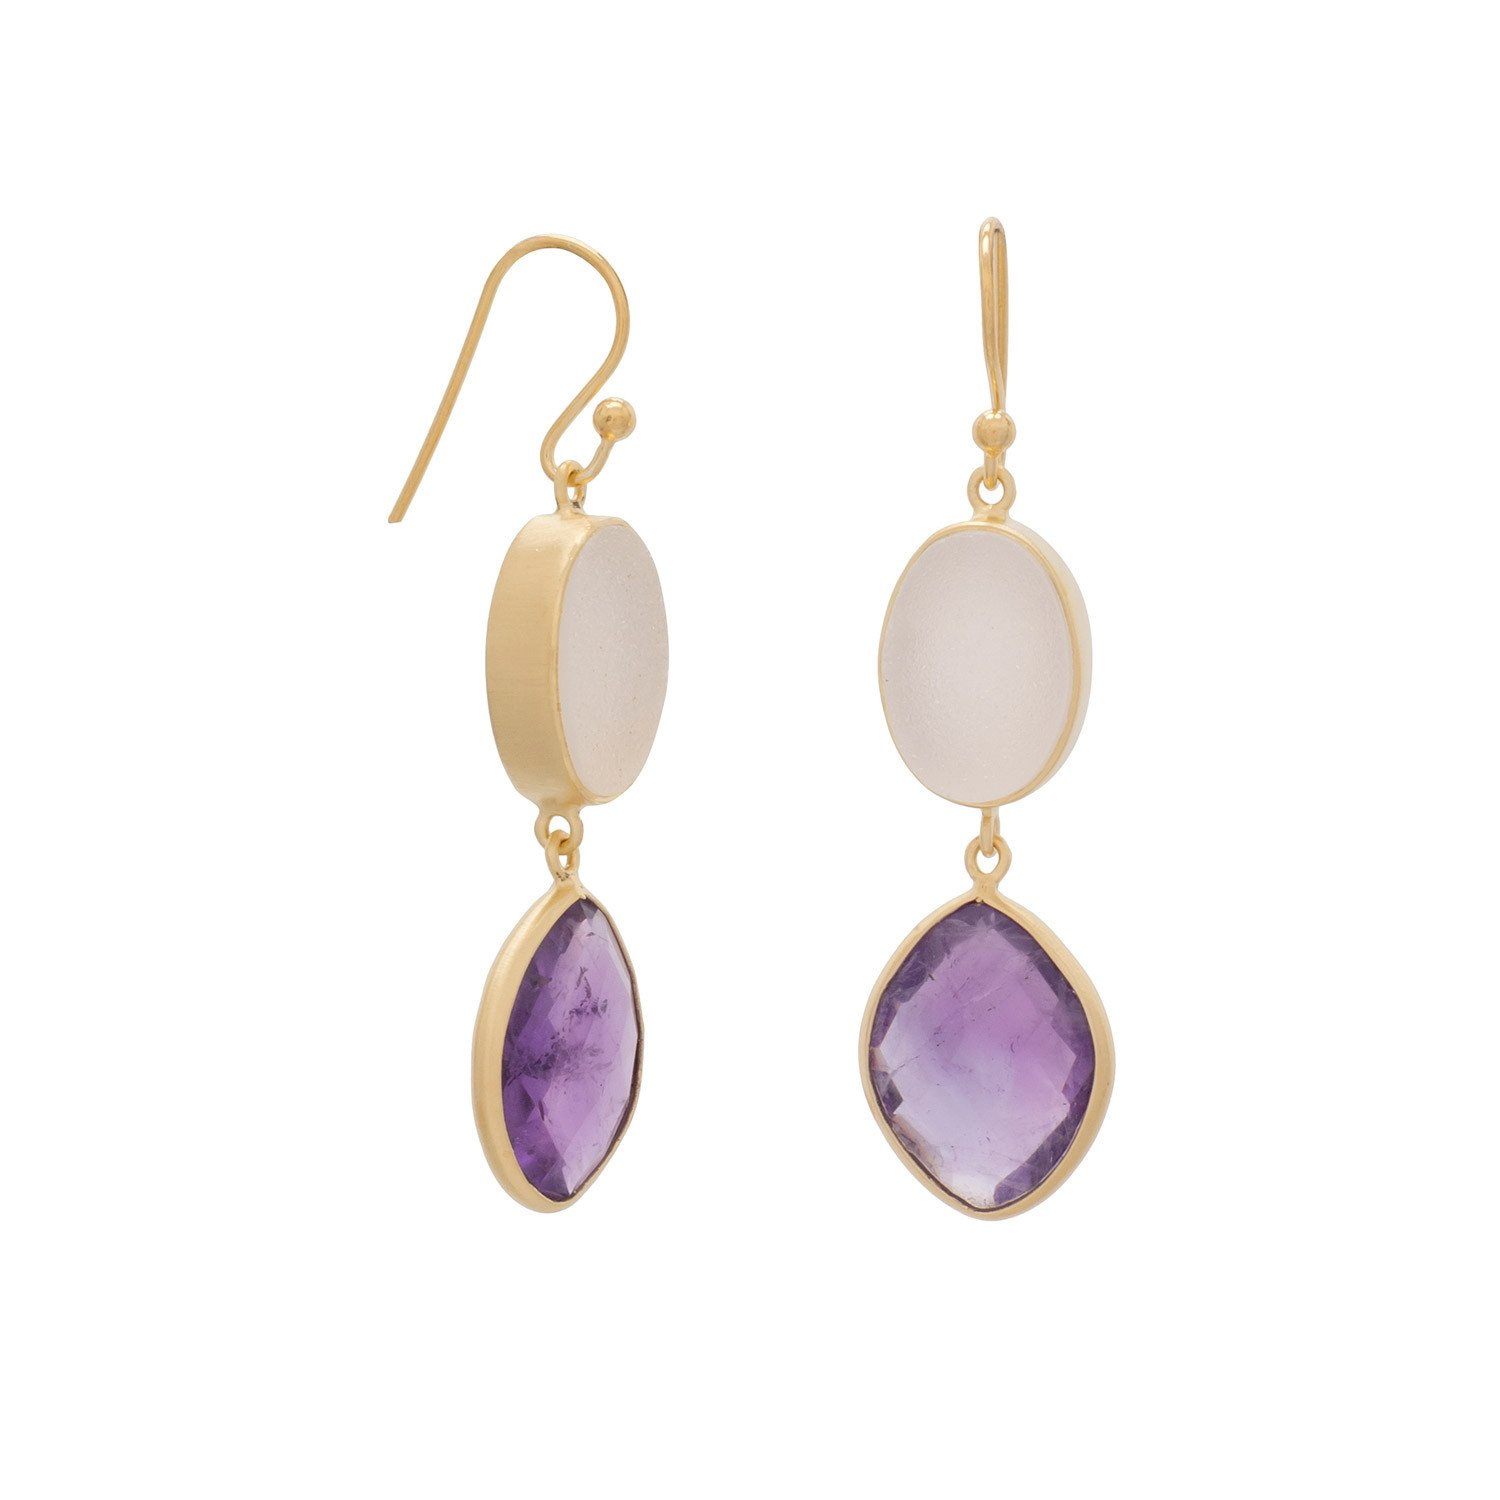 14K Gold Plated Earrings with Amethyst and Druzy